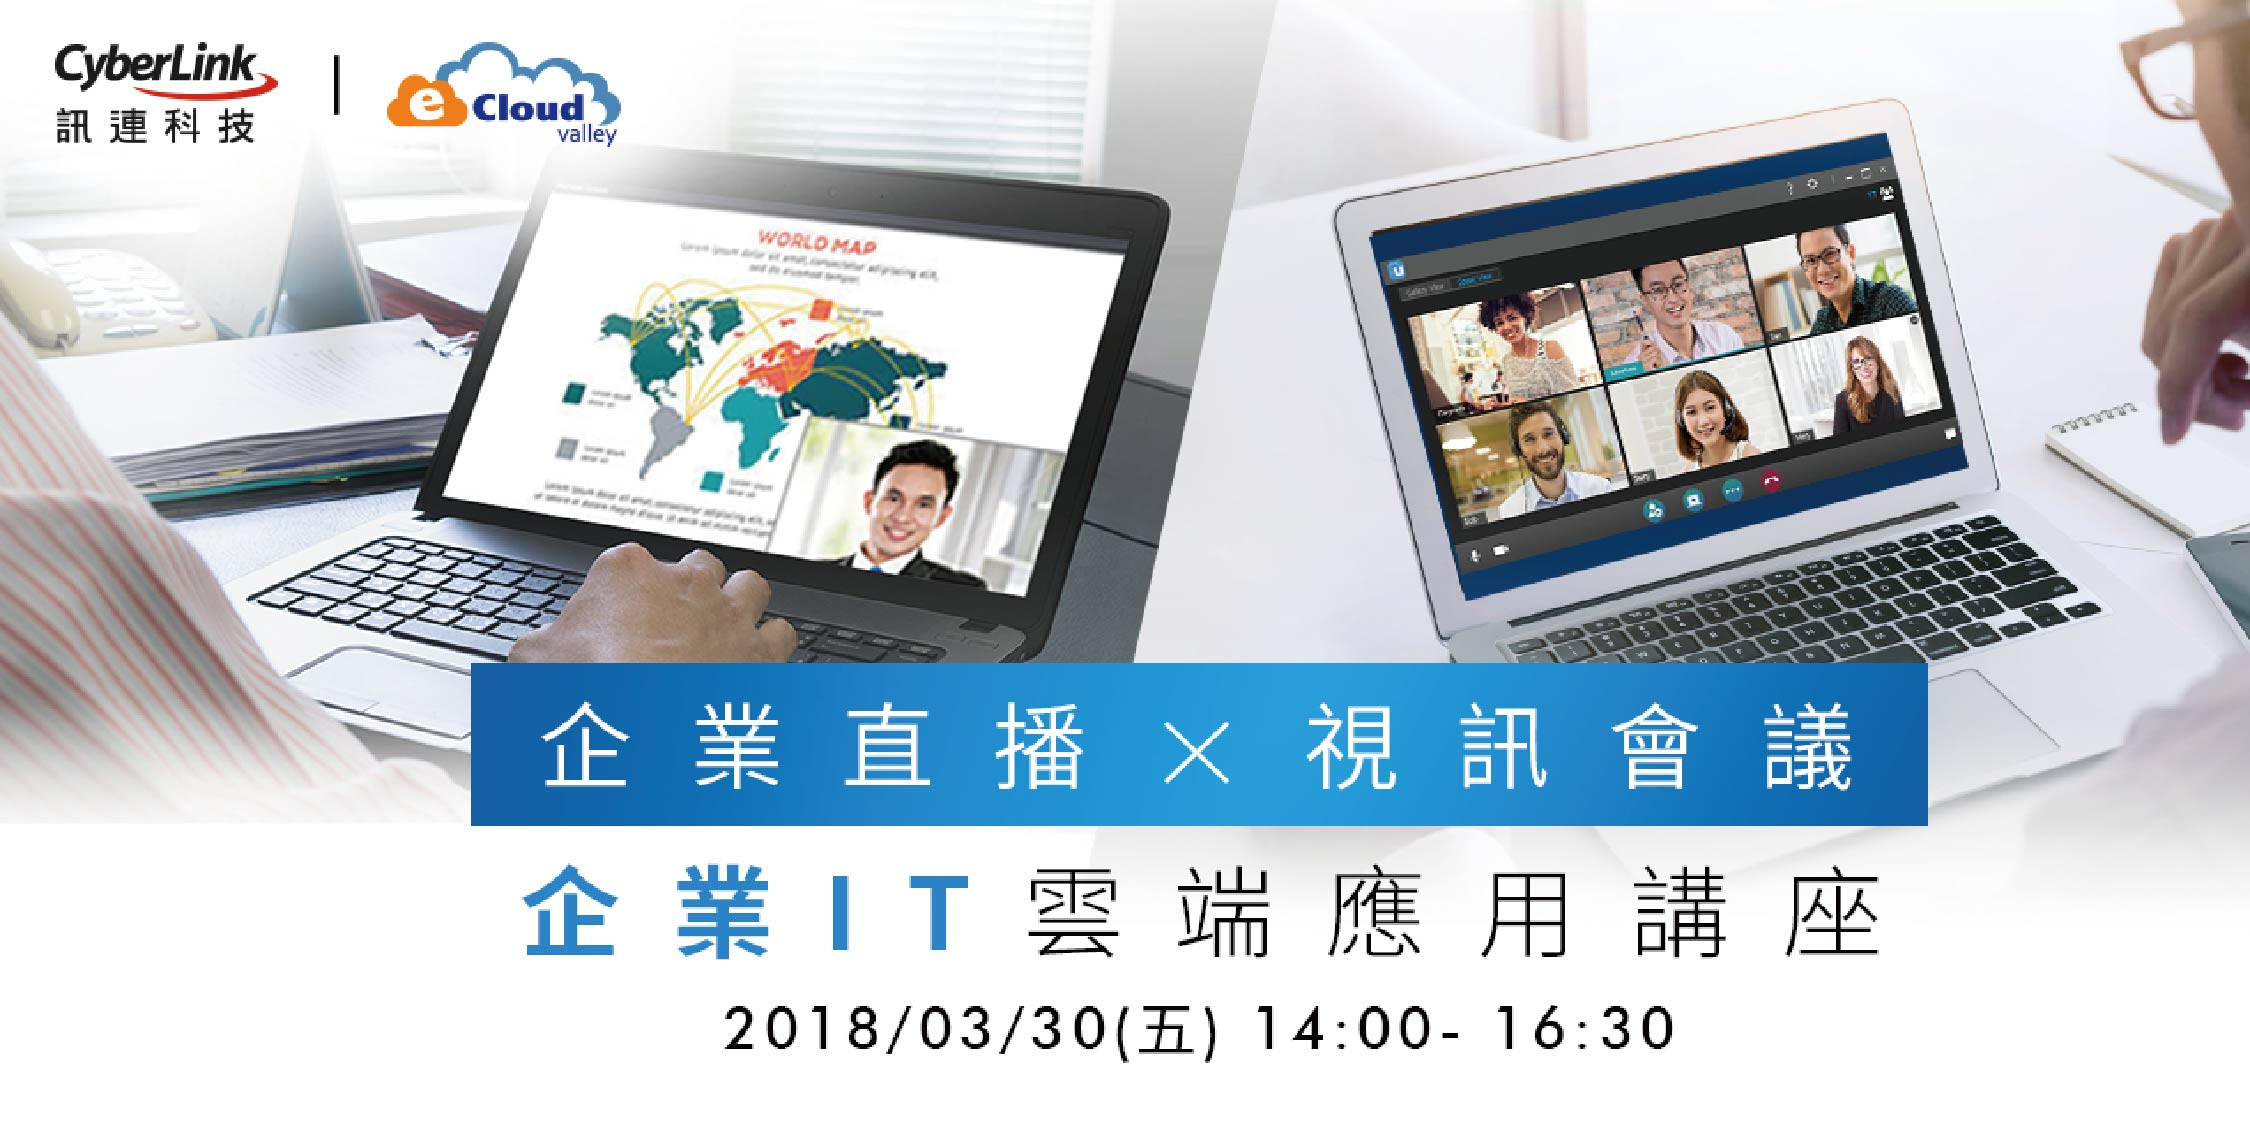 cyberlink and eCloudvalley event